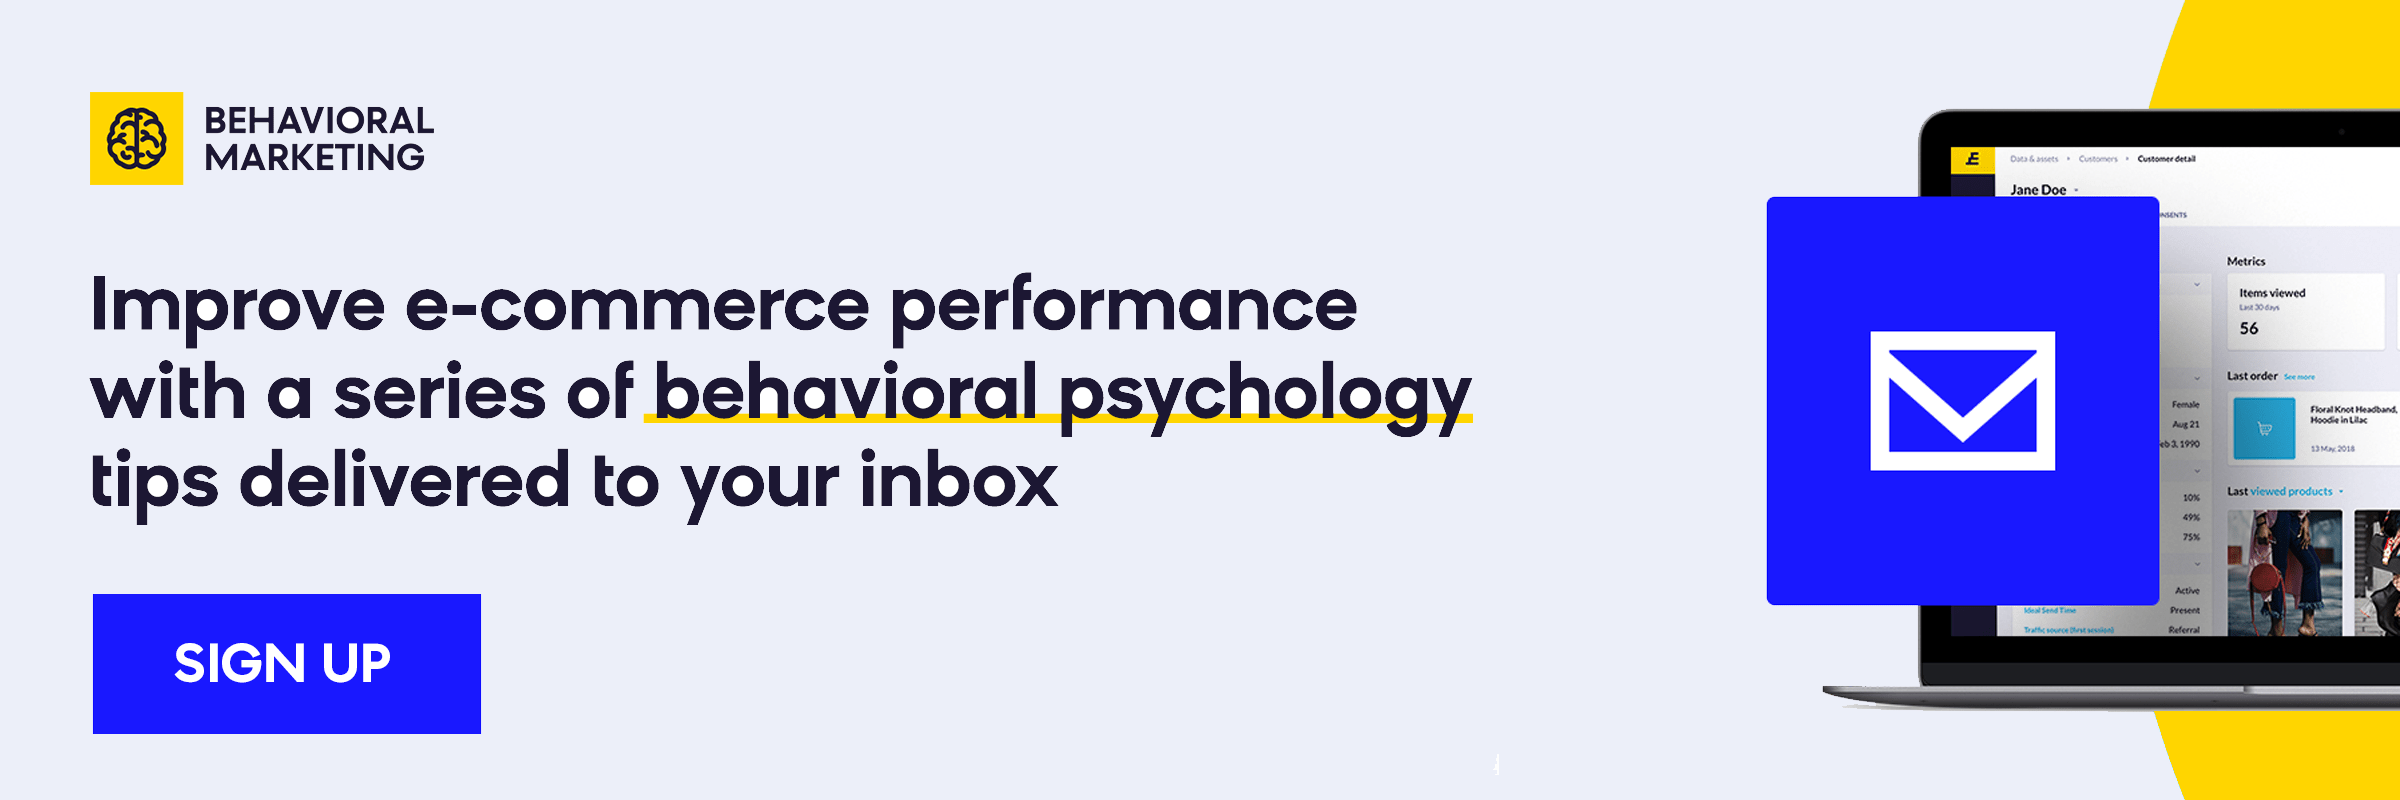 behavioral marketing - email course